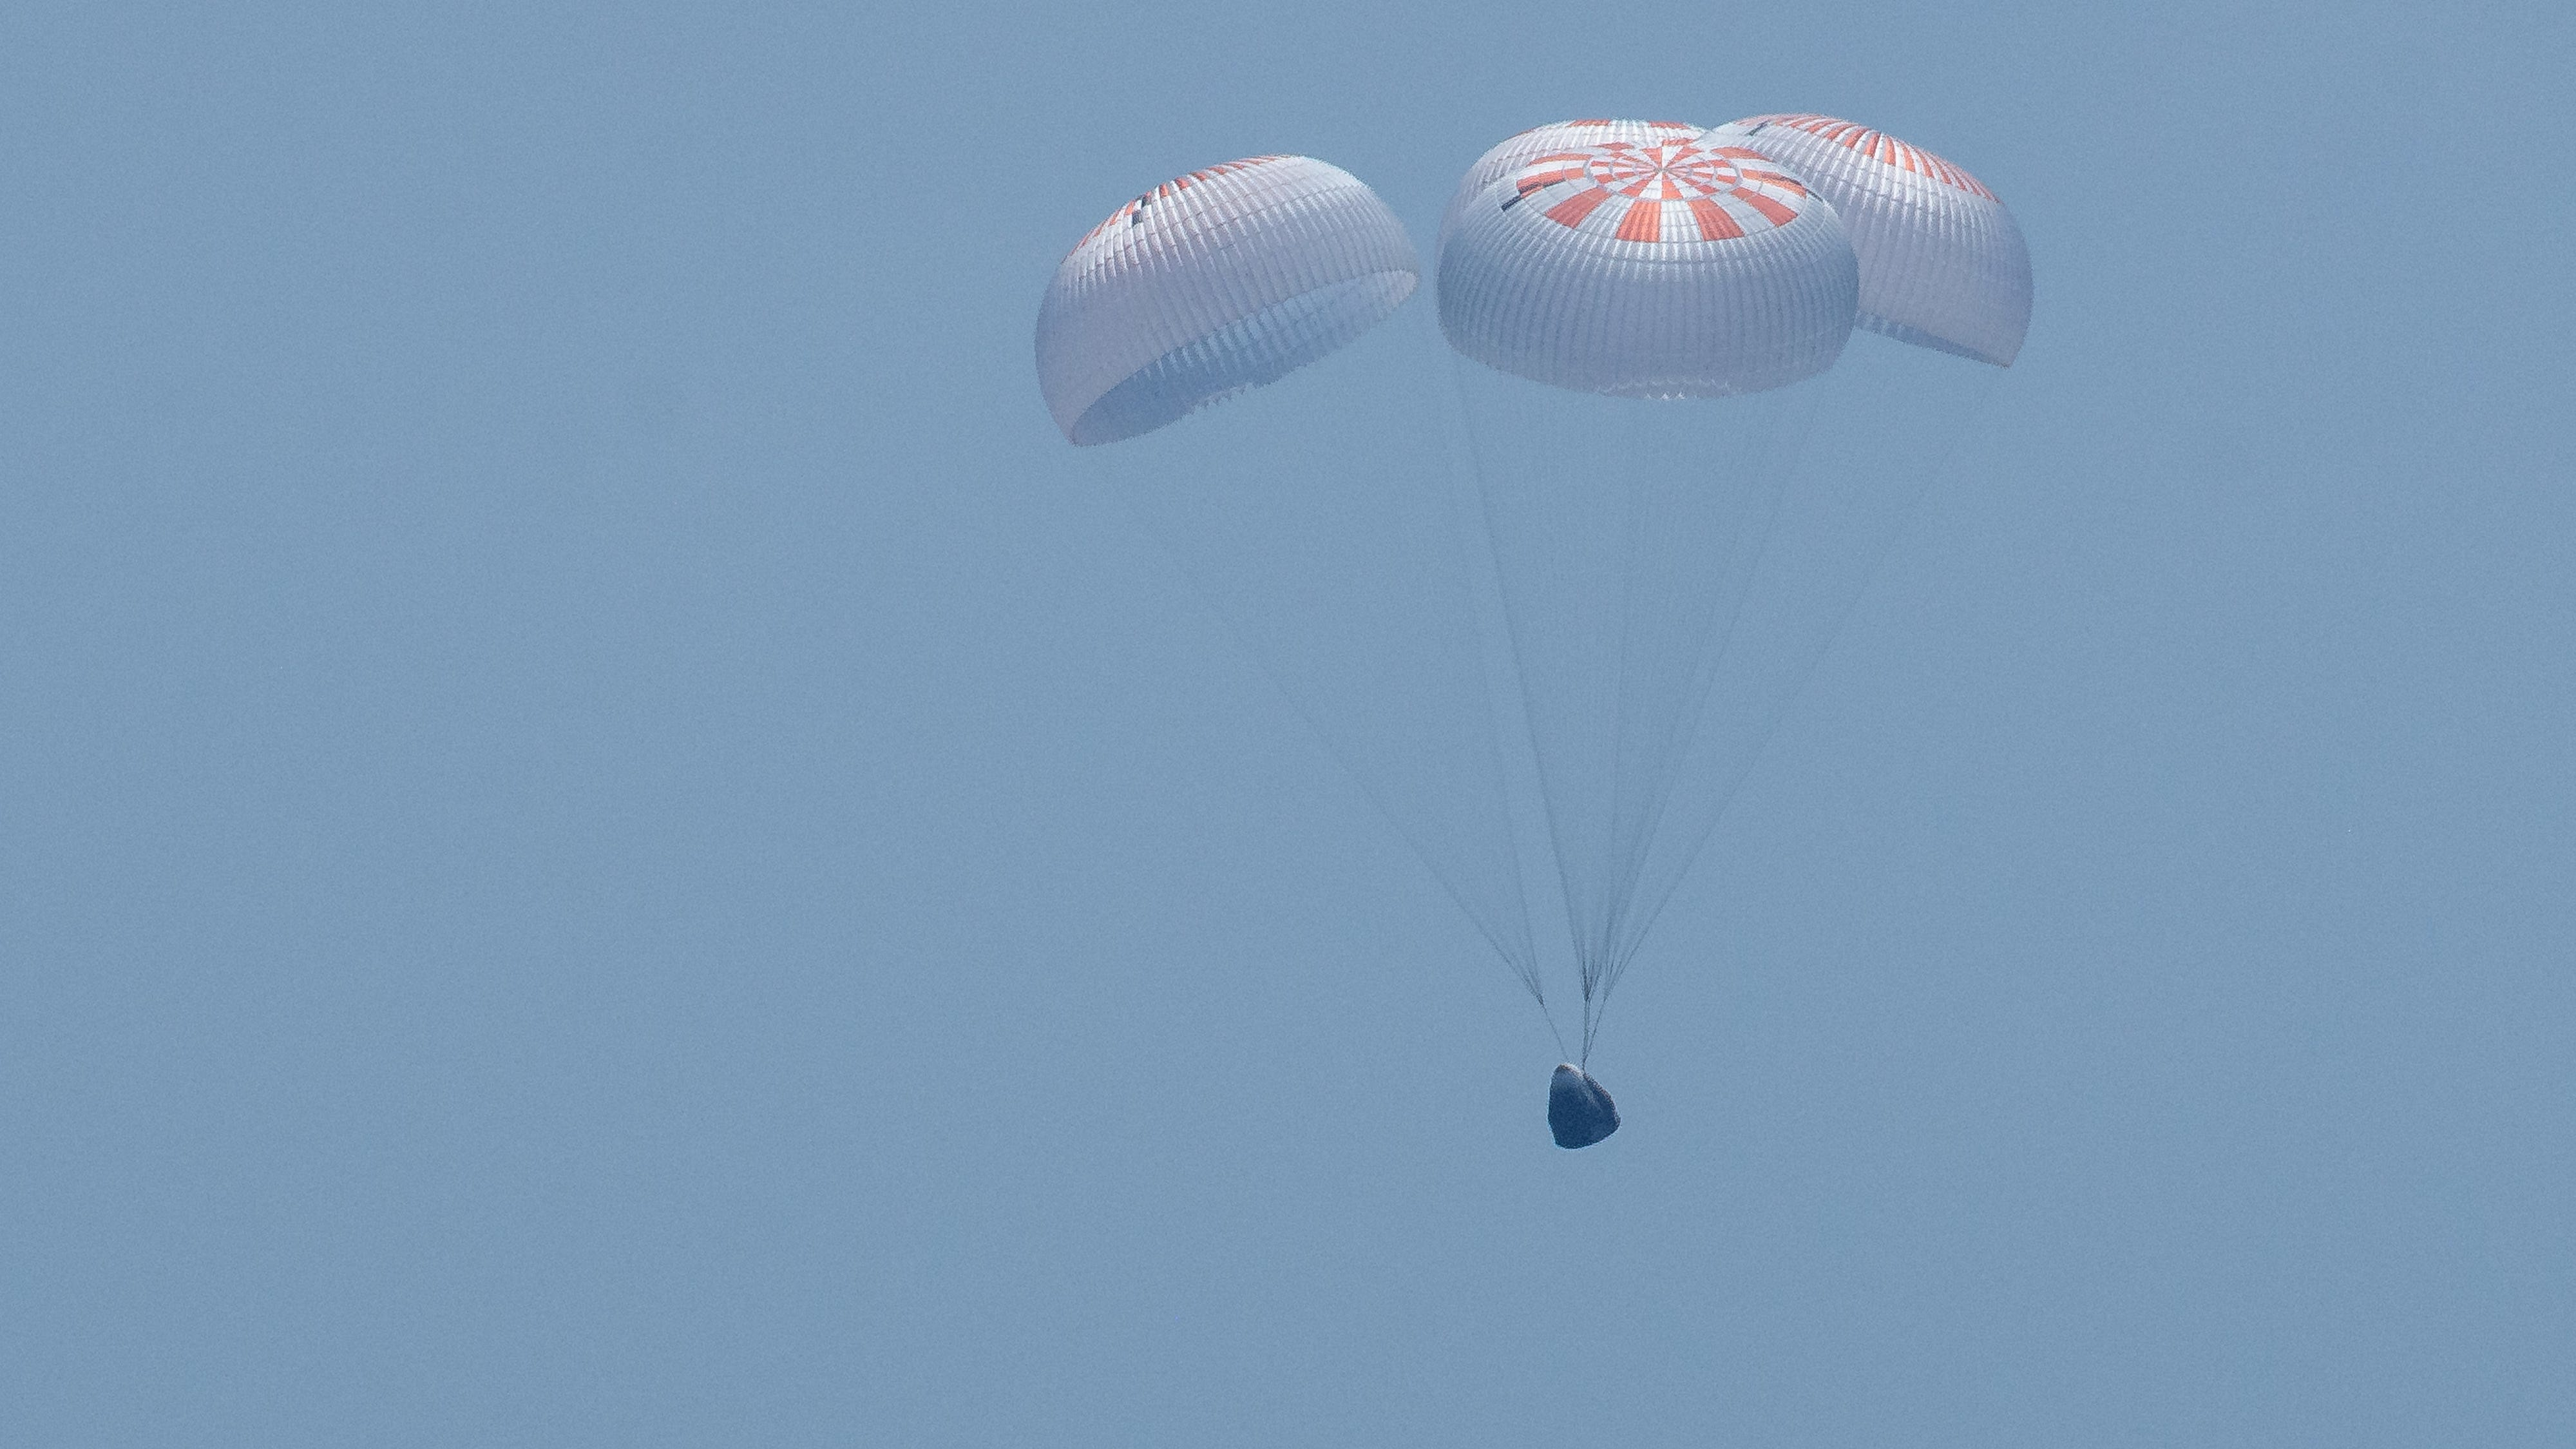 SpaceX's Crew Dragon capsule splashes down in the